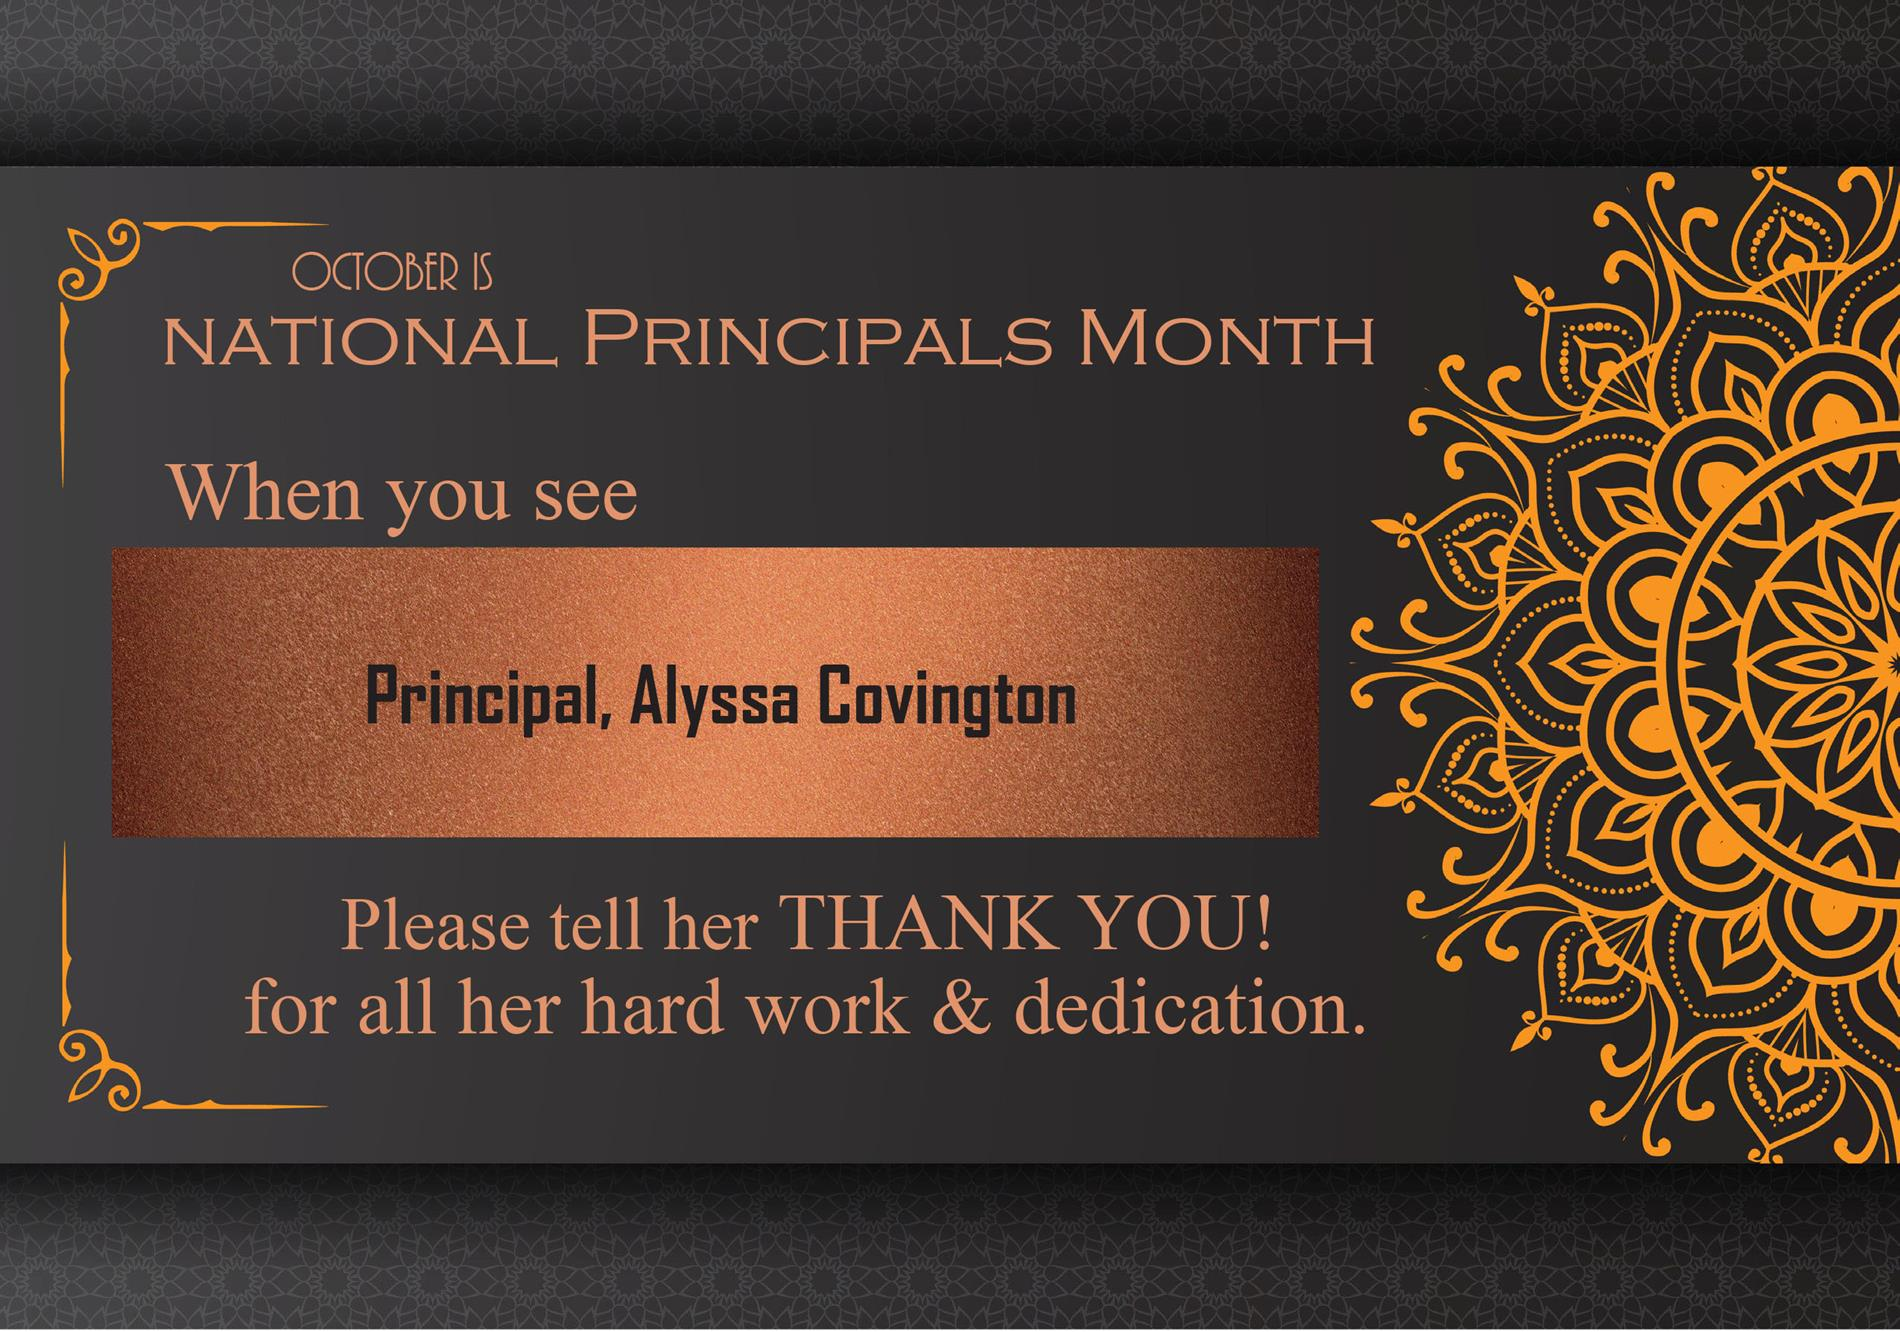 graphic for principals month